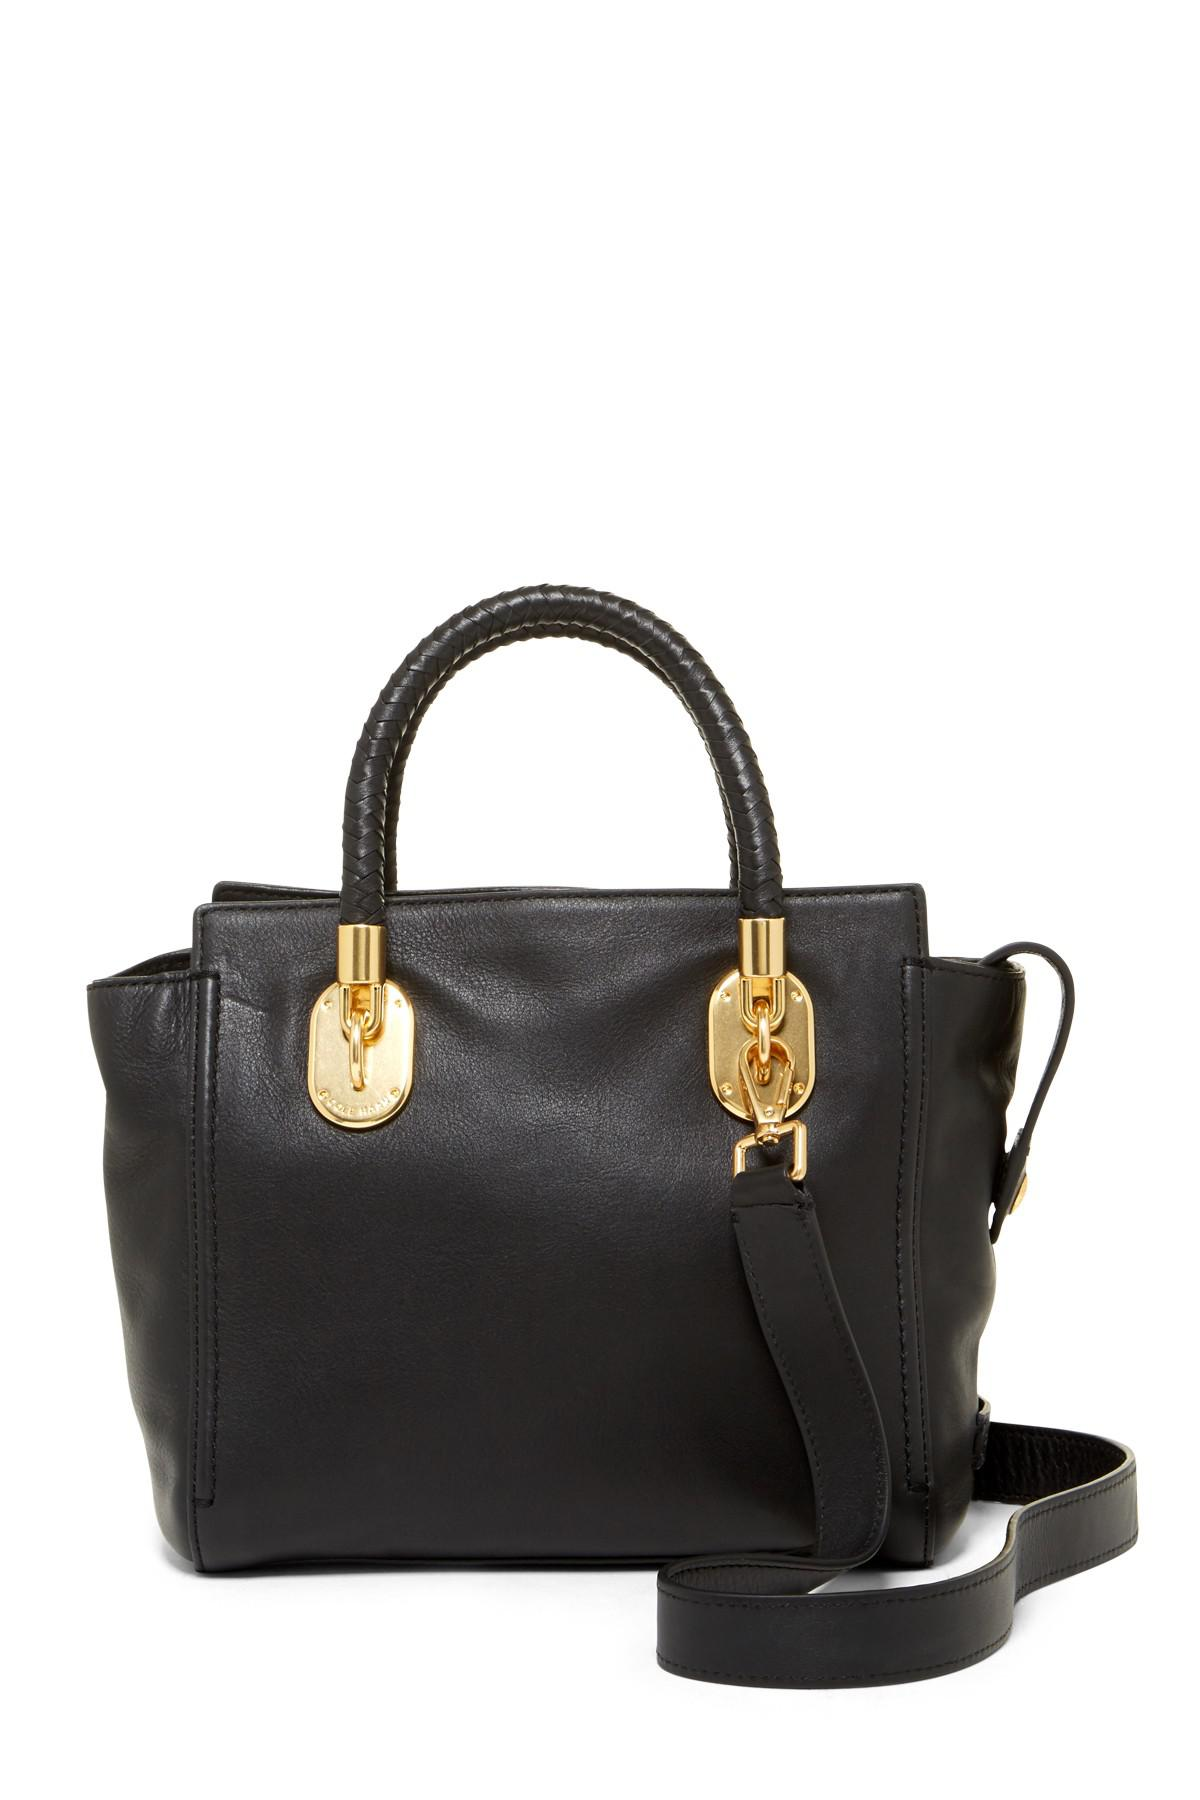 541b4e14bc9 Cole Haan Benson Ii Small Leather Tote in Black - Lyst